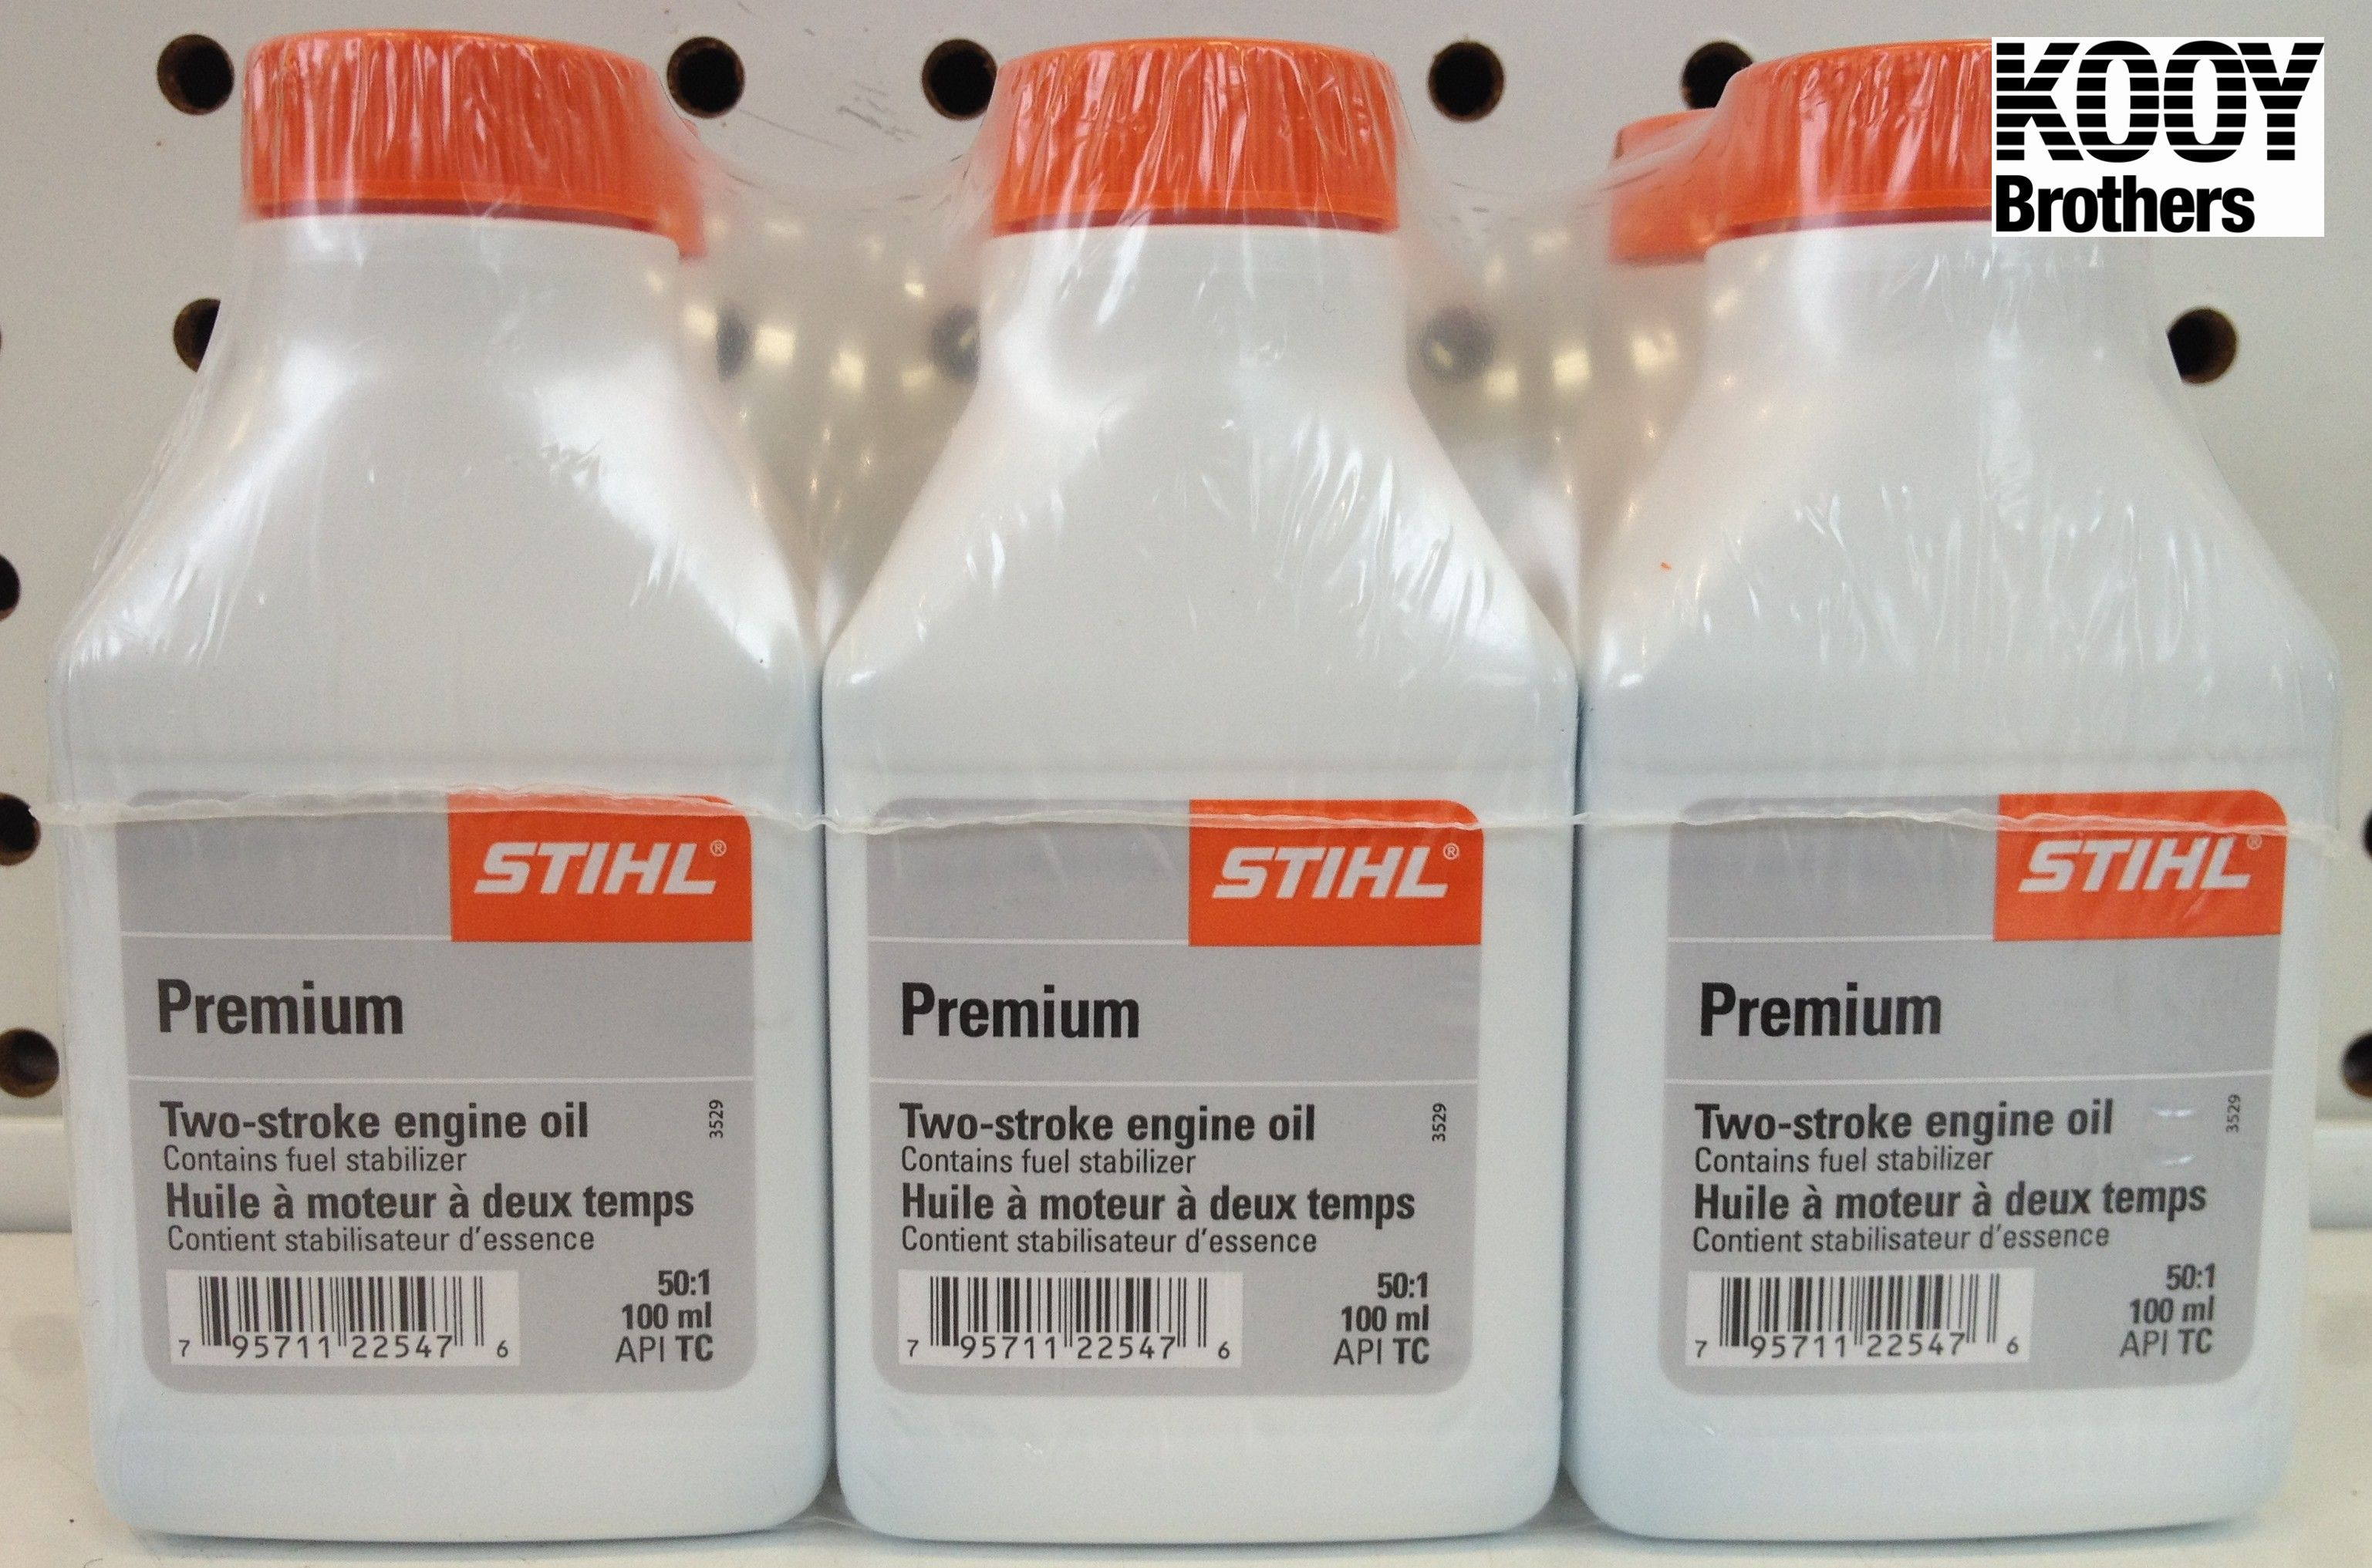 STIHL 100mL bottles of 2 cycle oil - 6 pack